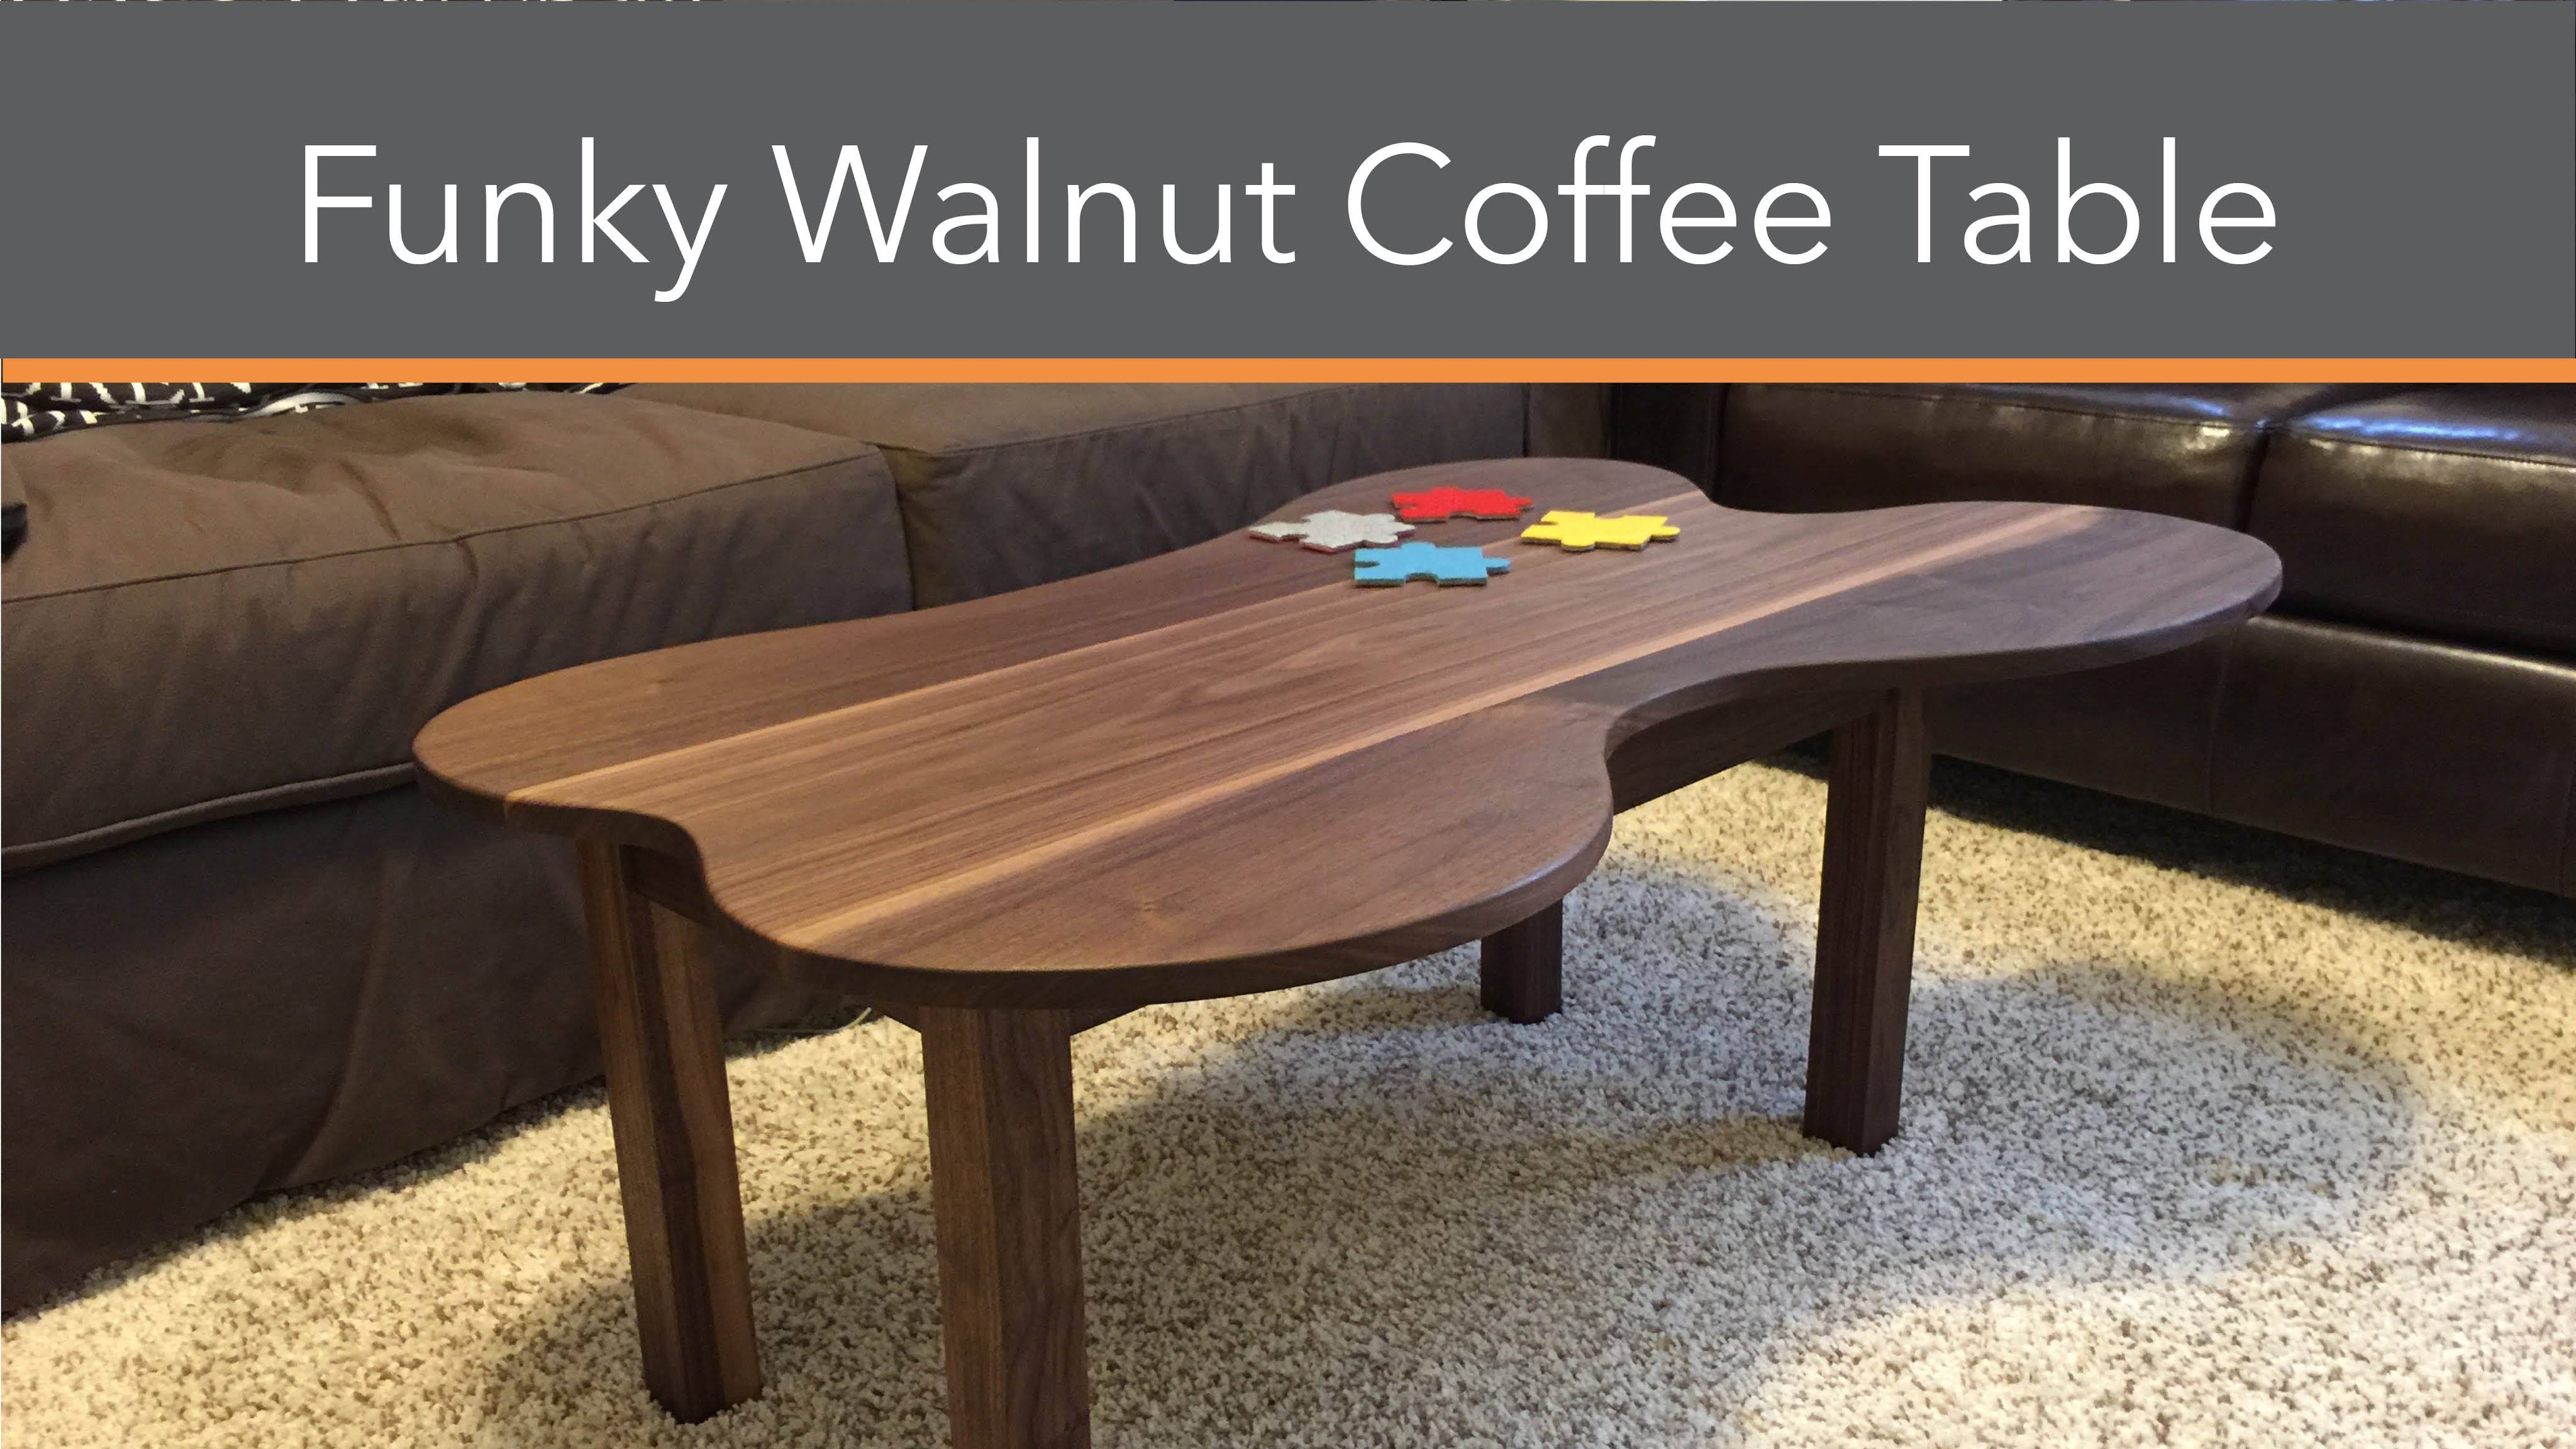 Funky Walnut Coffee Table Build - Youtube inside Funky Coffee Tables (Image 16 of 30)